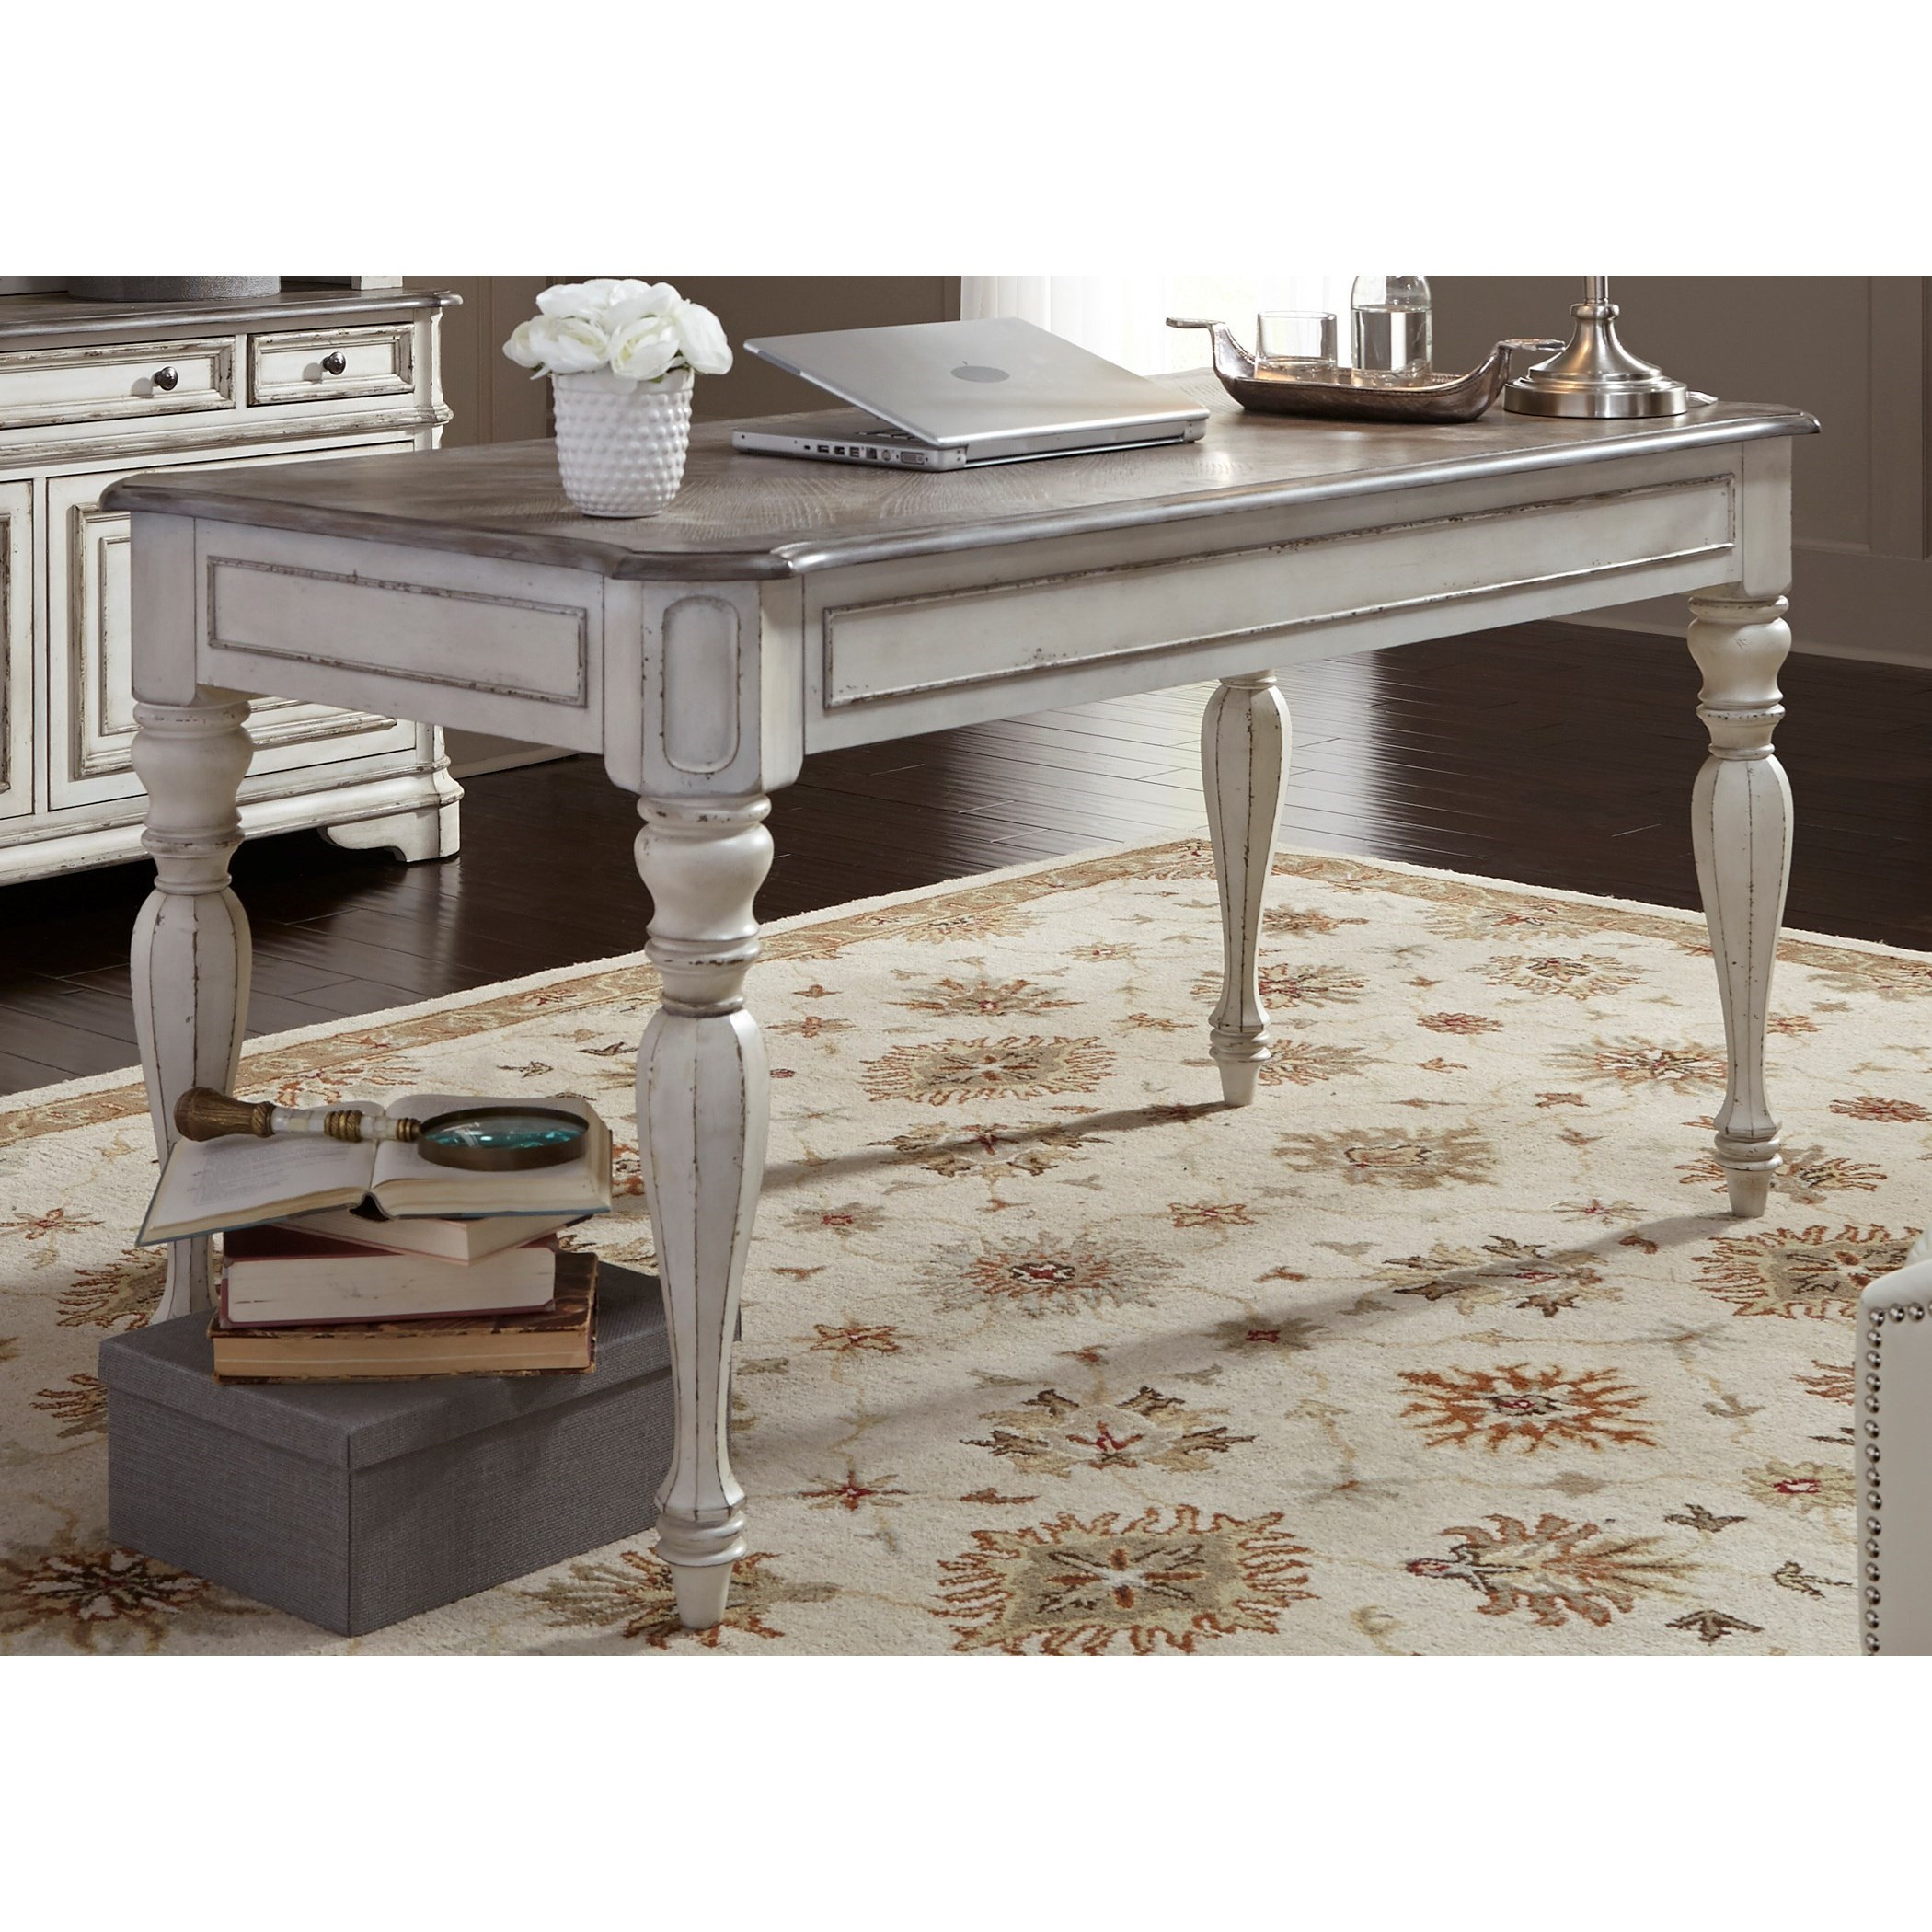 Superieur Liberty Furniture Magnolia Manor Office Writing Desk With Turned Legs